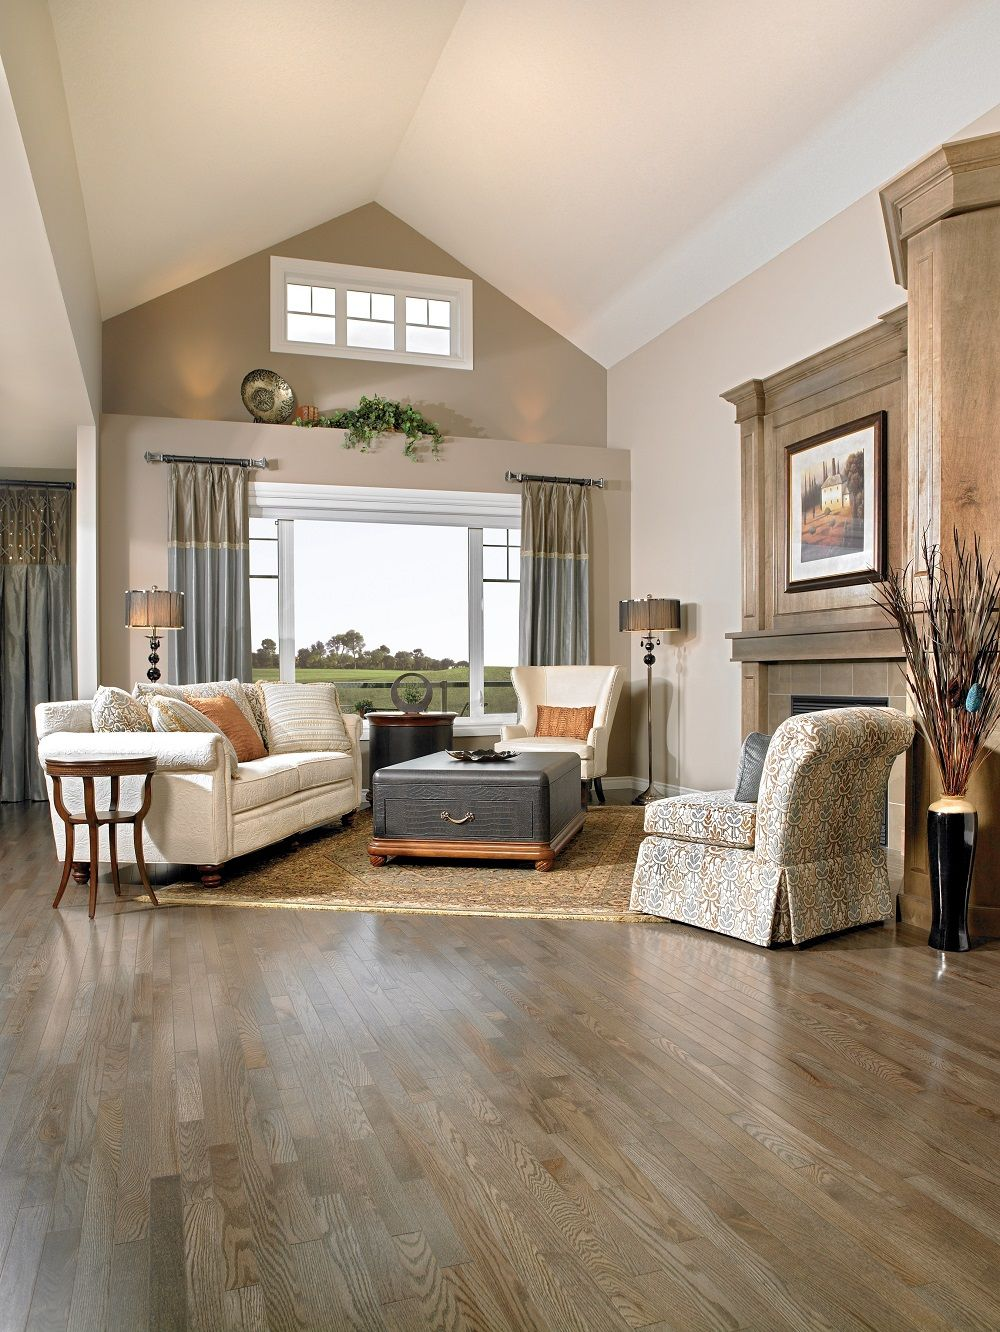 Mirage red oak charcoal hardwood flooring decor design for Color of hardwood floors